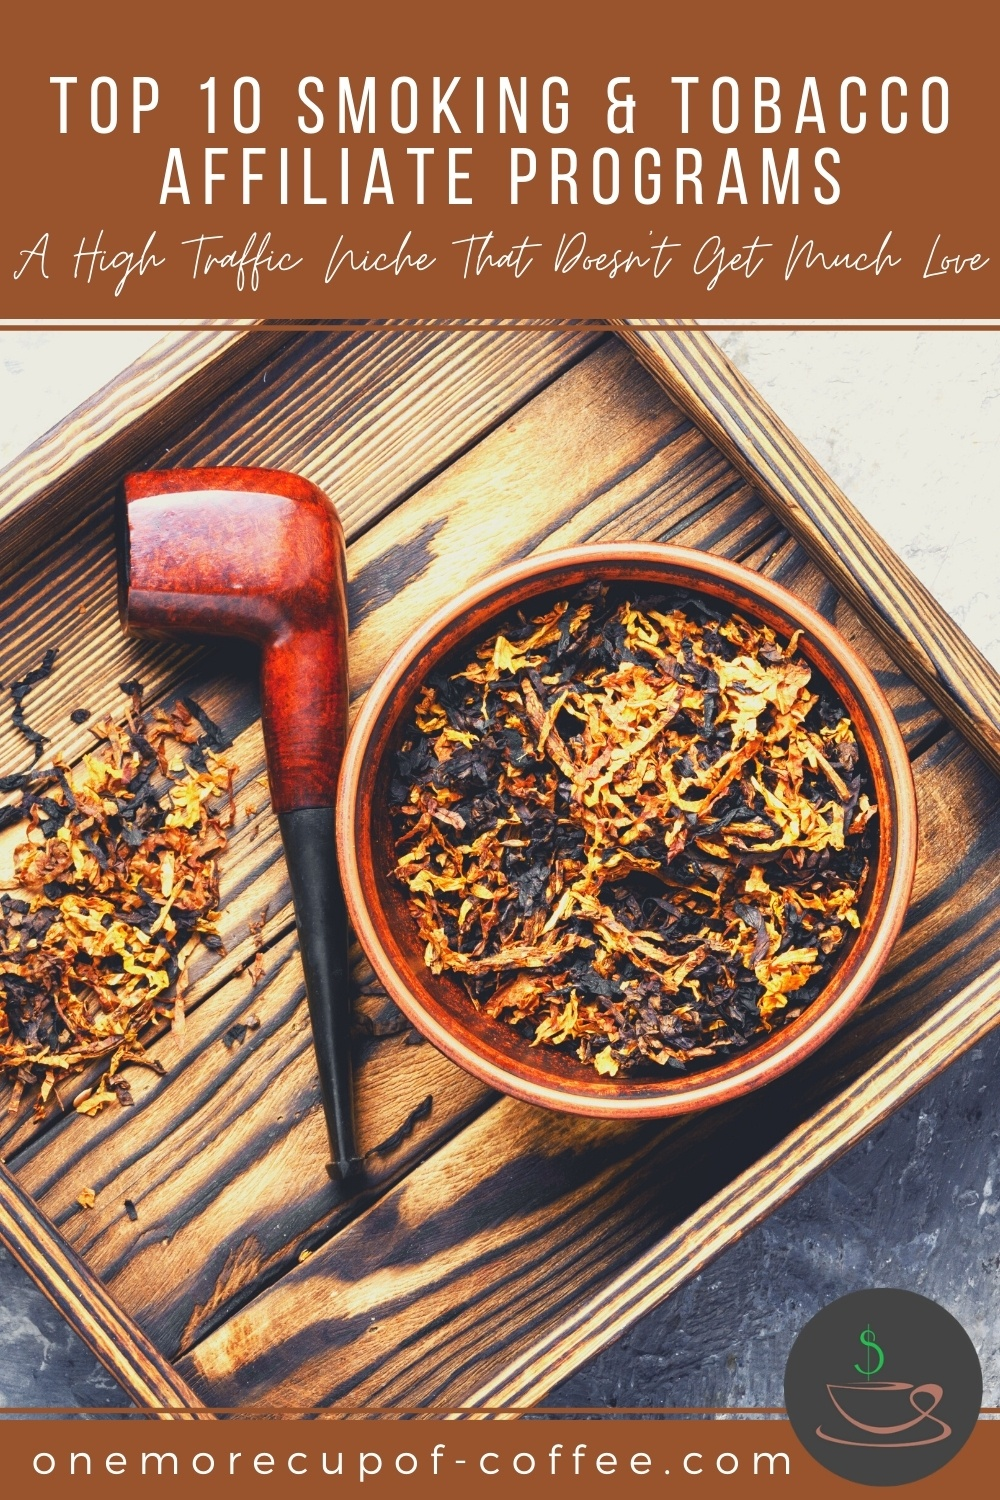 red tobacco pipe and loose tobacco leaves on a dish, on a wooden serving tray; with text at the top in brown banner